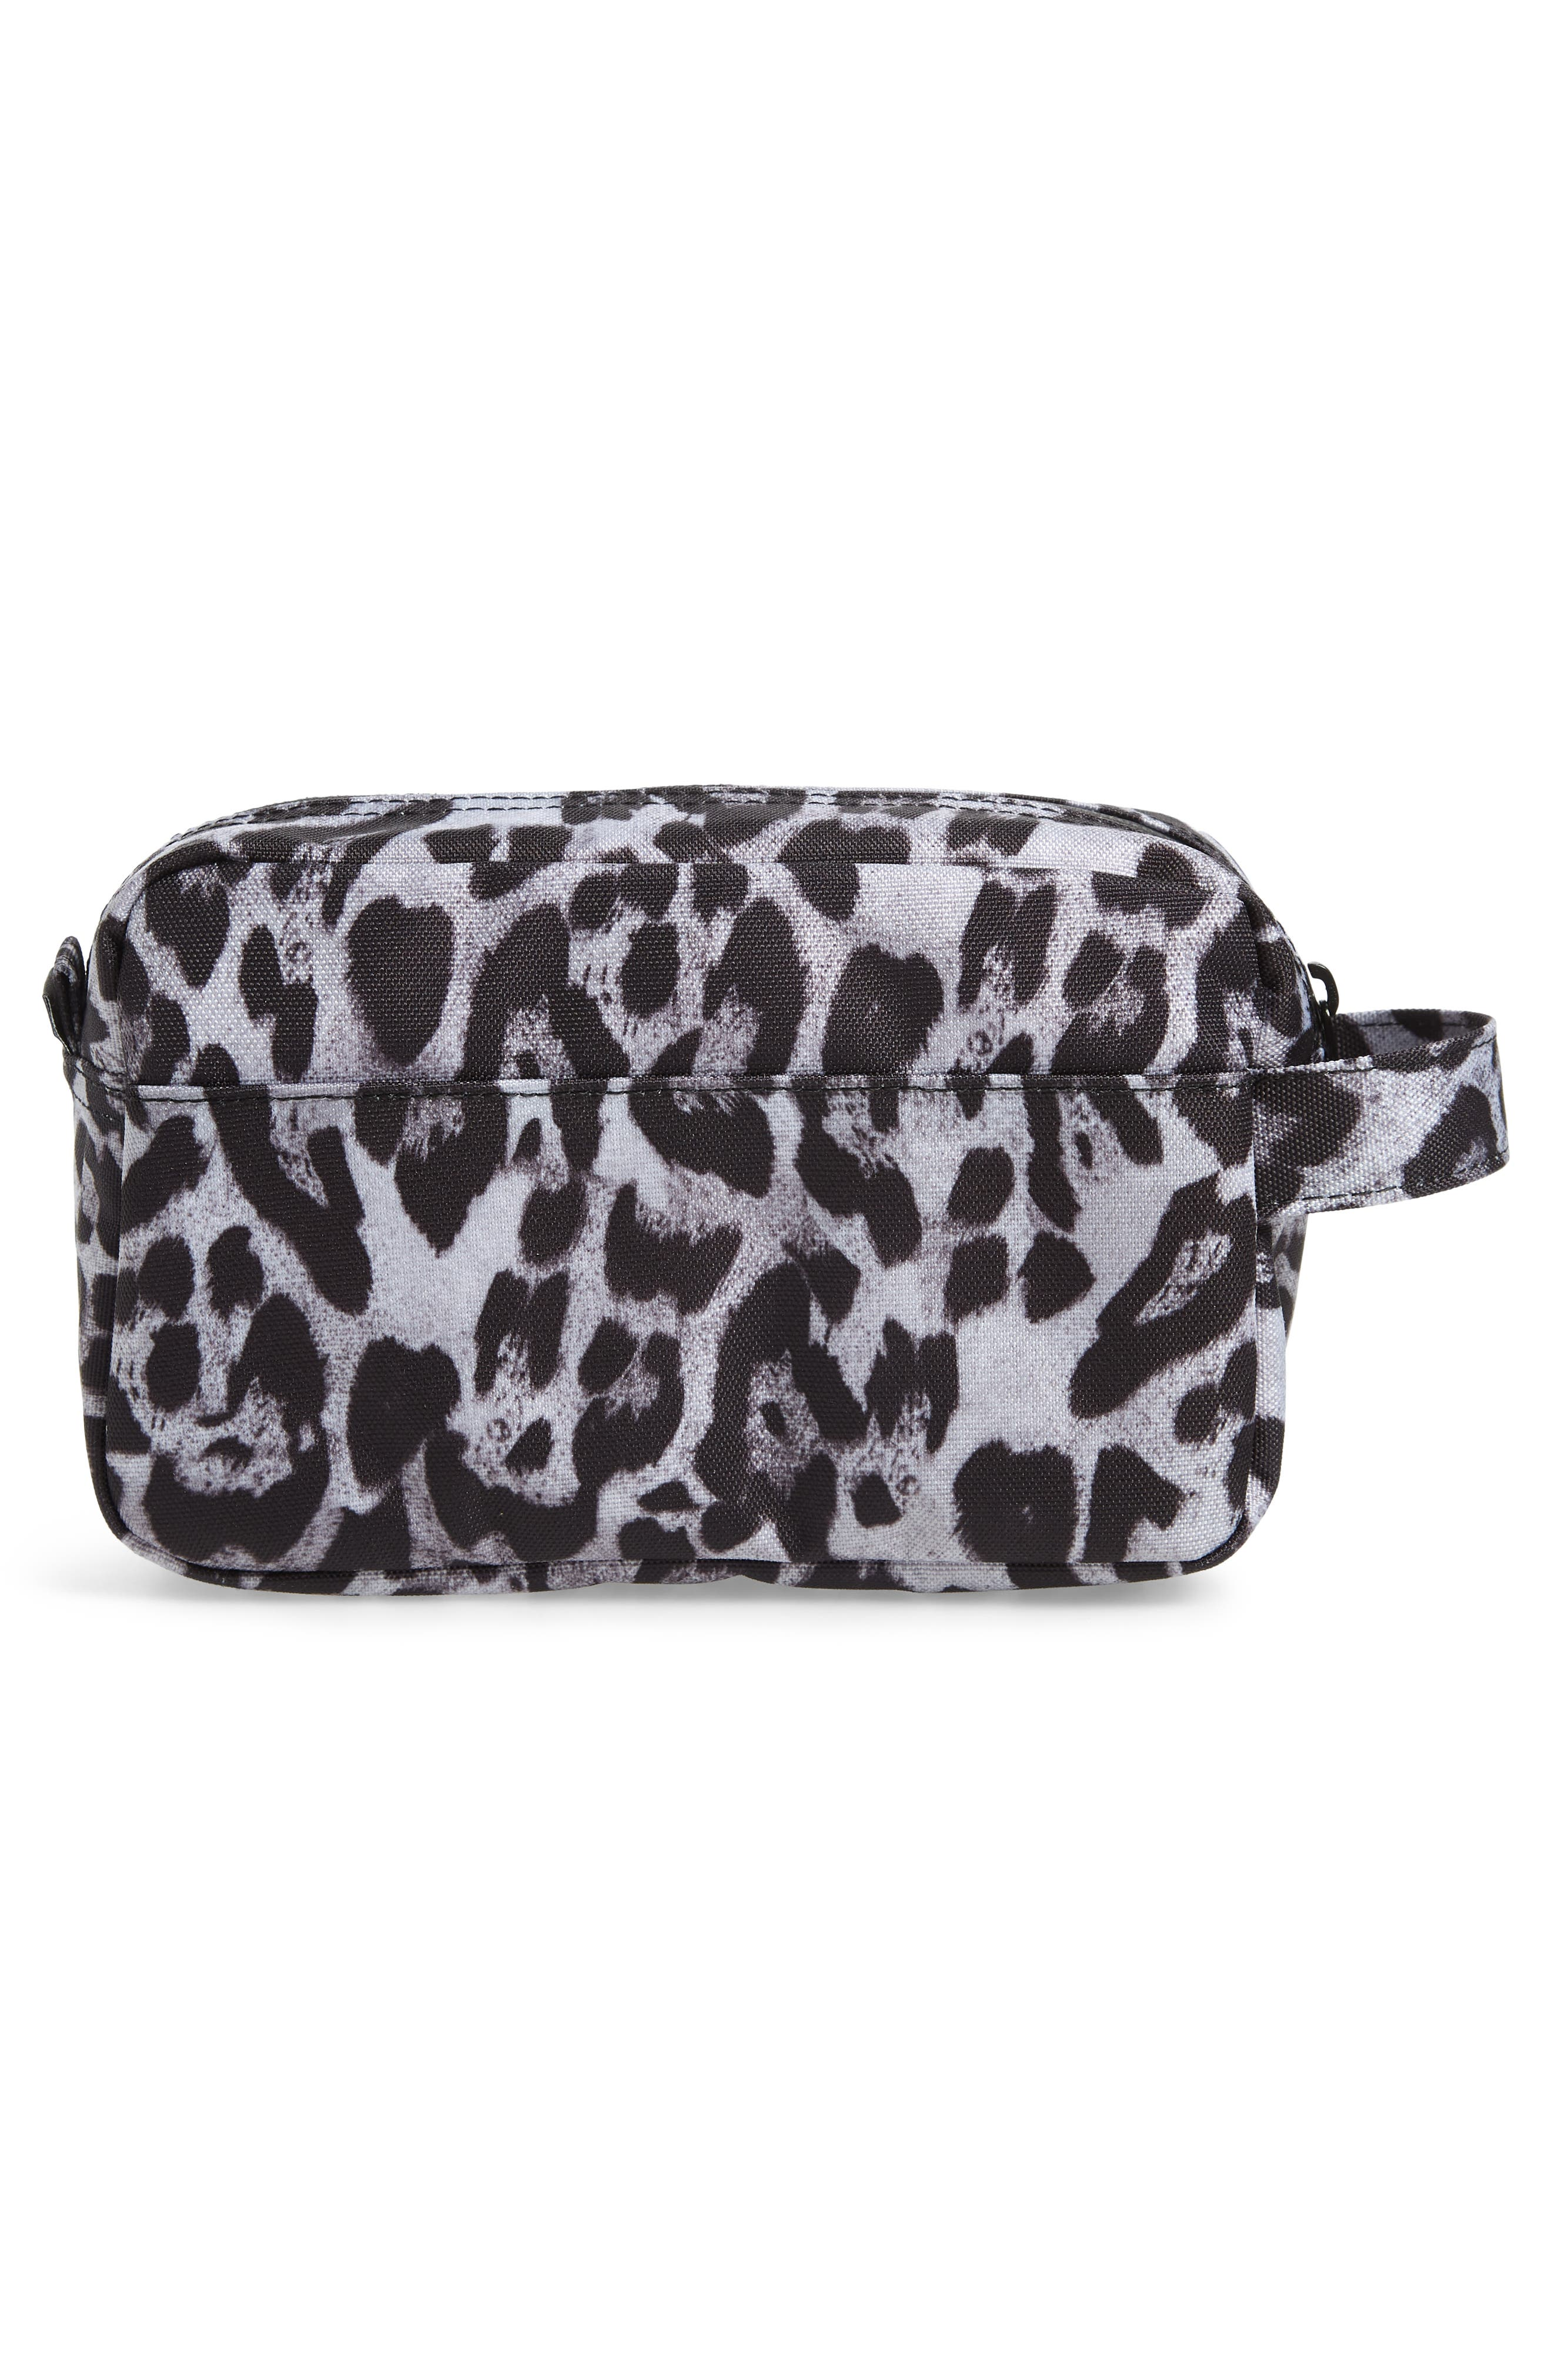 Chapter Carry-On Travel Kit,                             Alternate thumbnail 2, color,                             SNOW LEOPARD